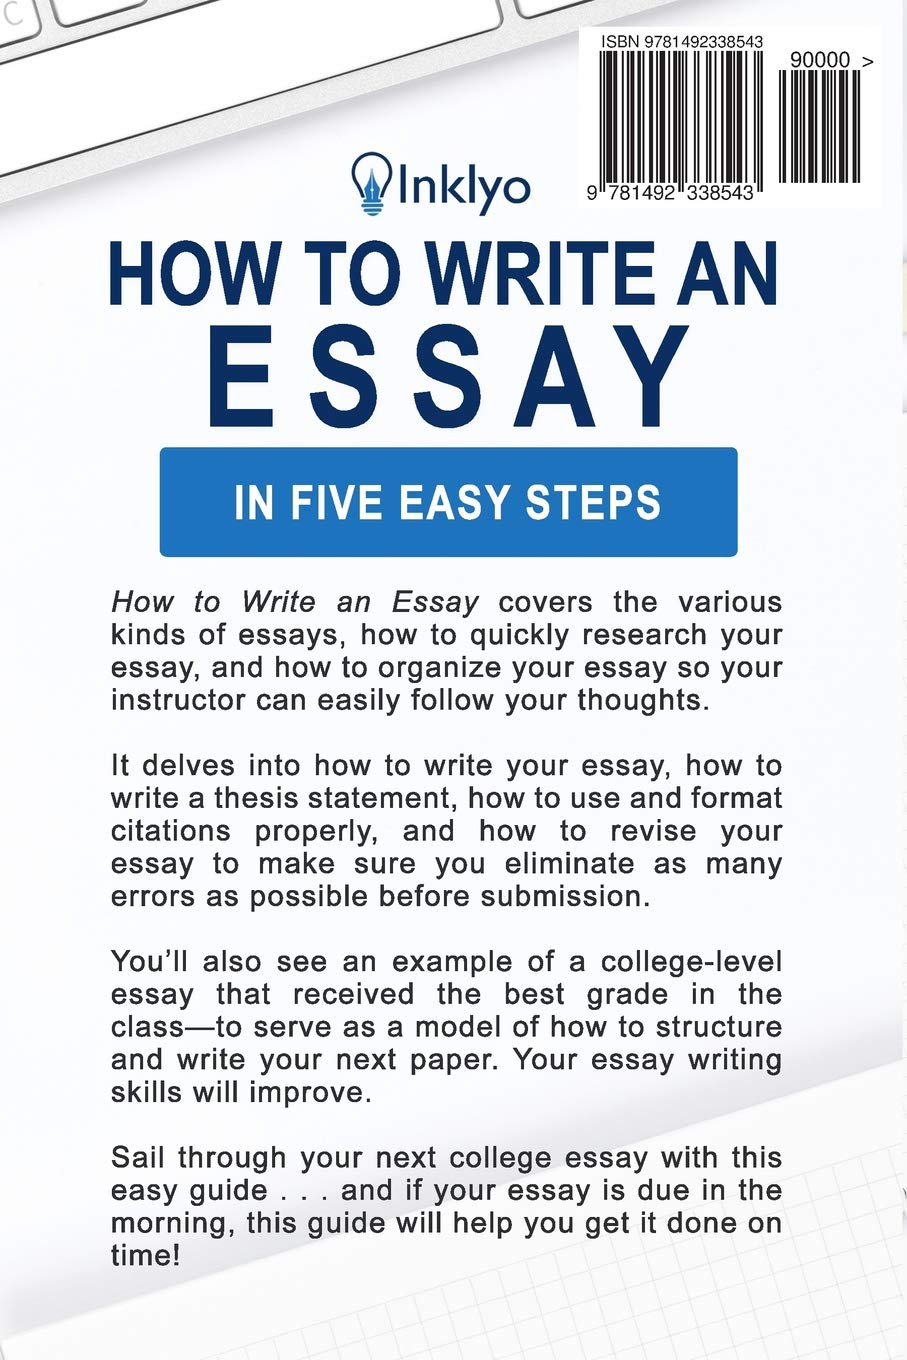 Essays On High School How To Write An Essay In Five Easy Steps Scribendi   Amazoncom Books Essay Writing Paper also Health And Fitness Essay How To Write An Essay In Five Easy Steps Scribendi   Apa Format For Essay Paper